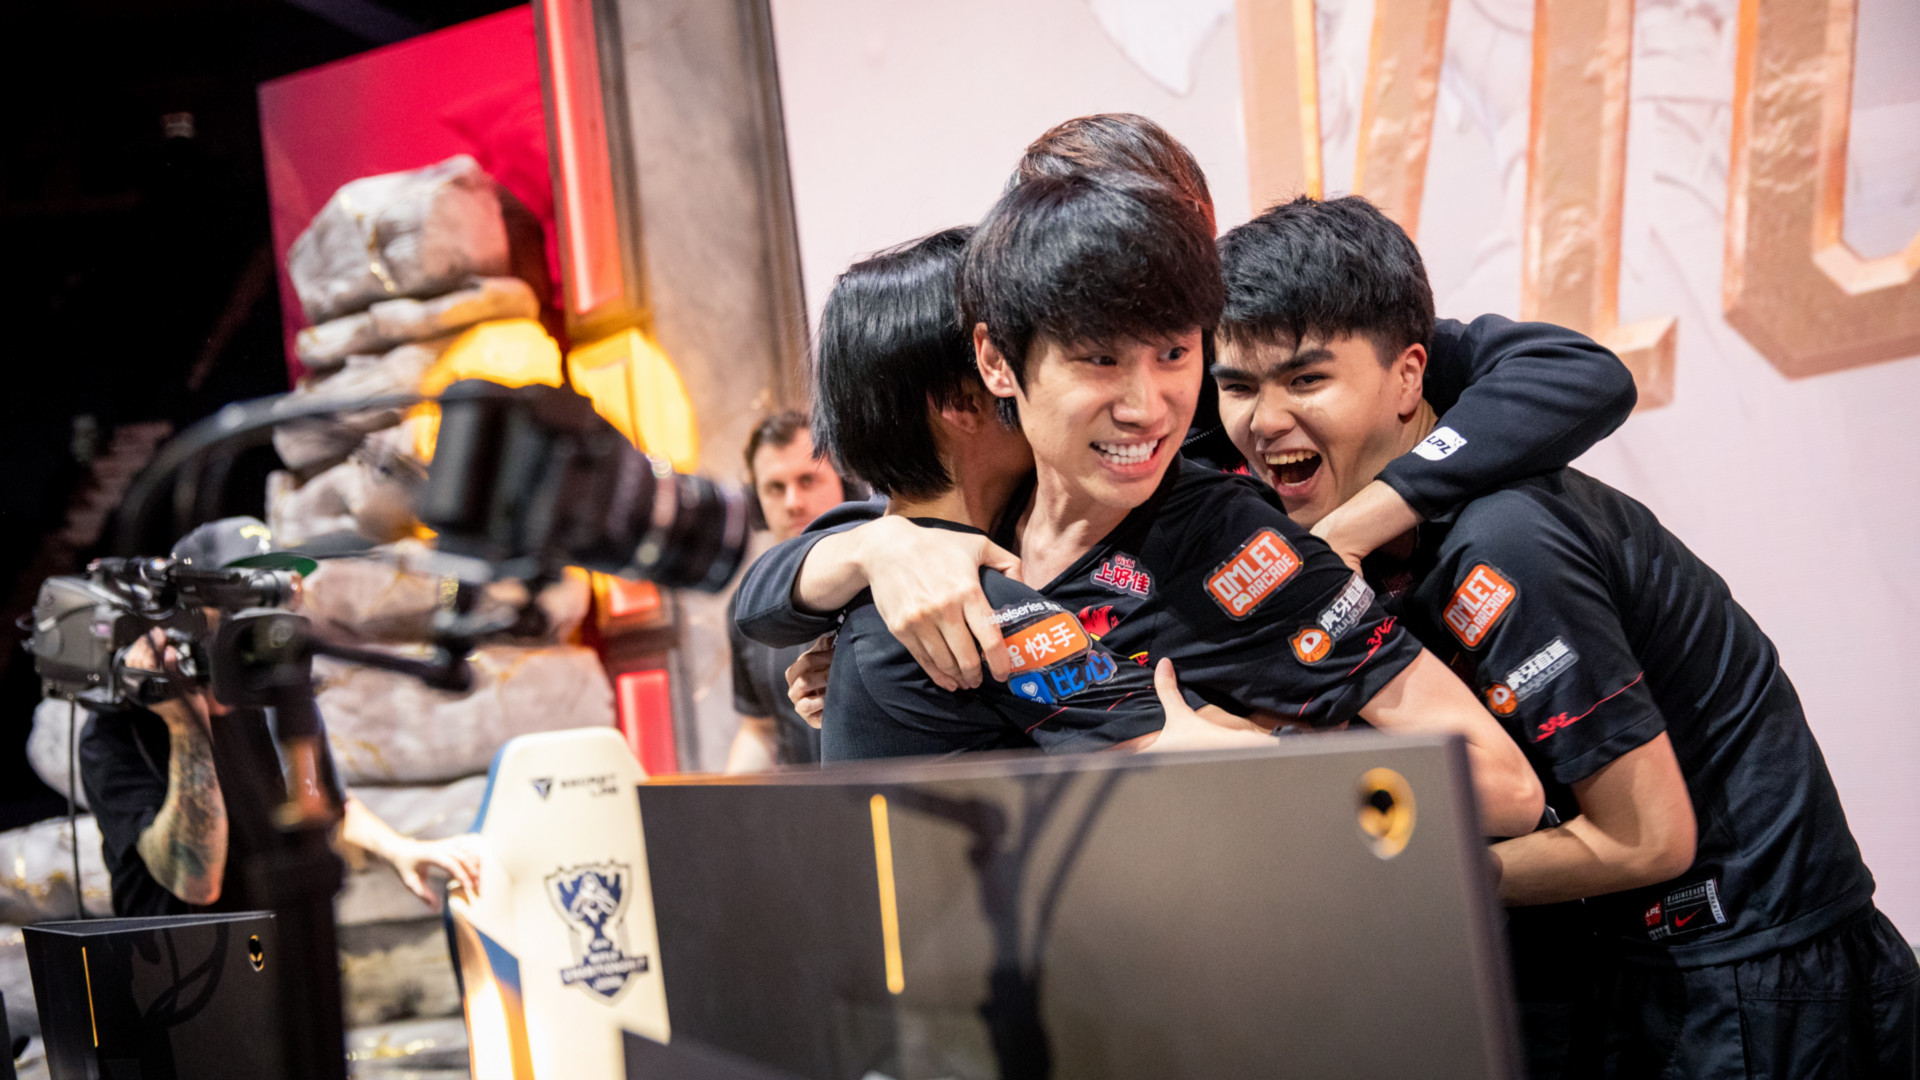 worlds-2019-then-there-were-two-fpx-win